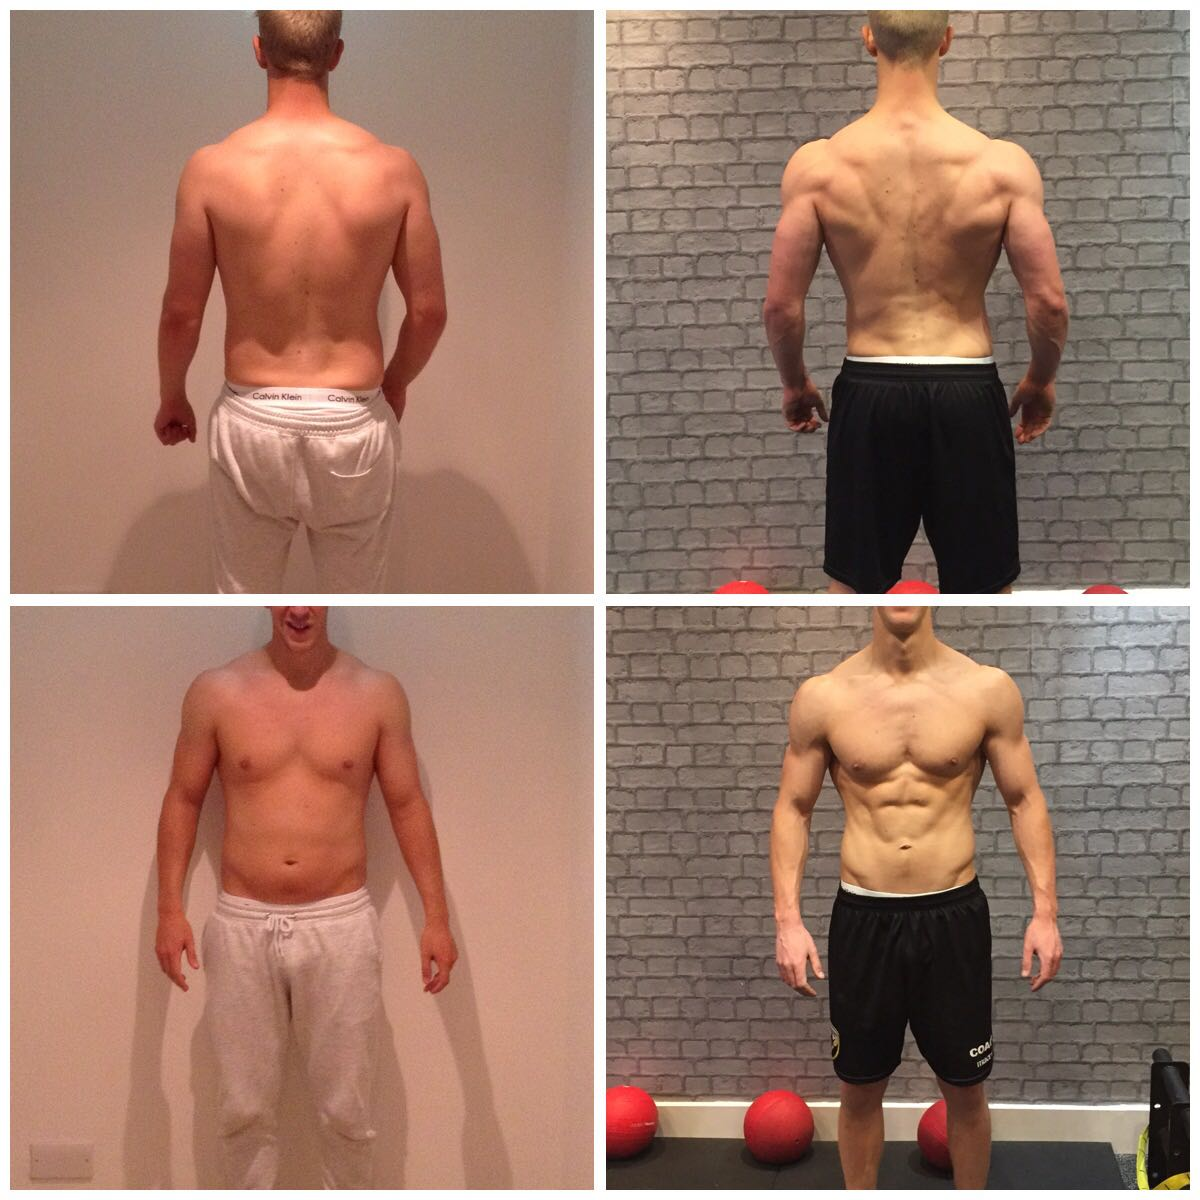 More body transformations at Blueprint Fitness Whetstone, N20